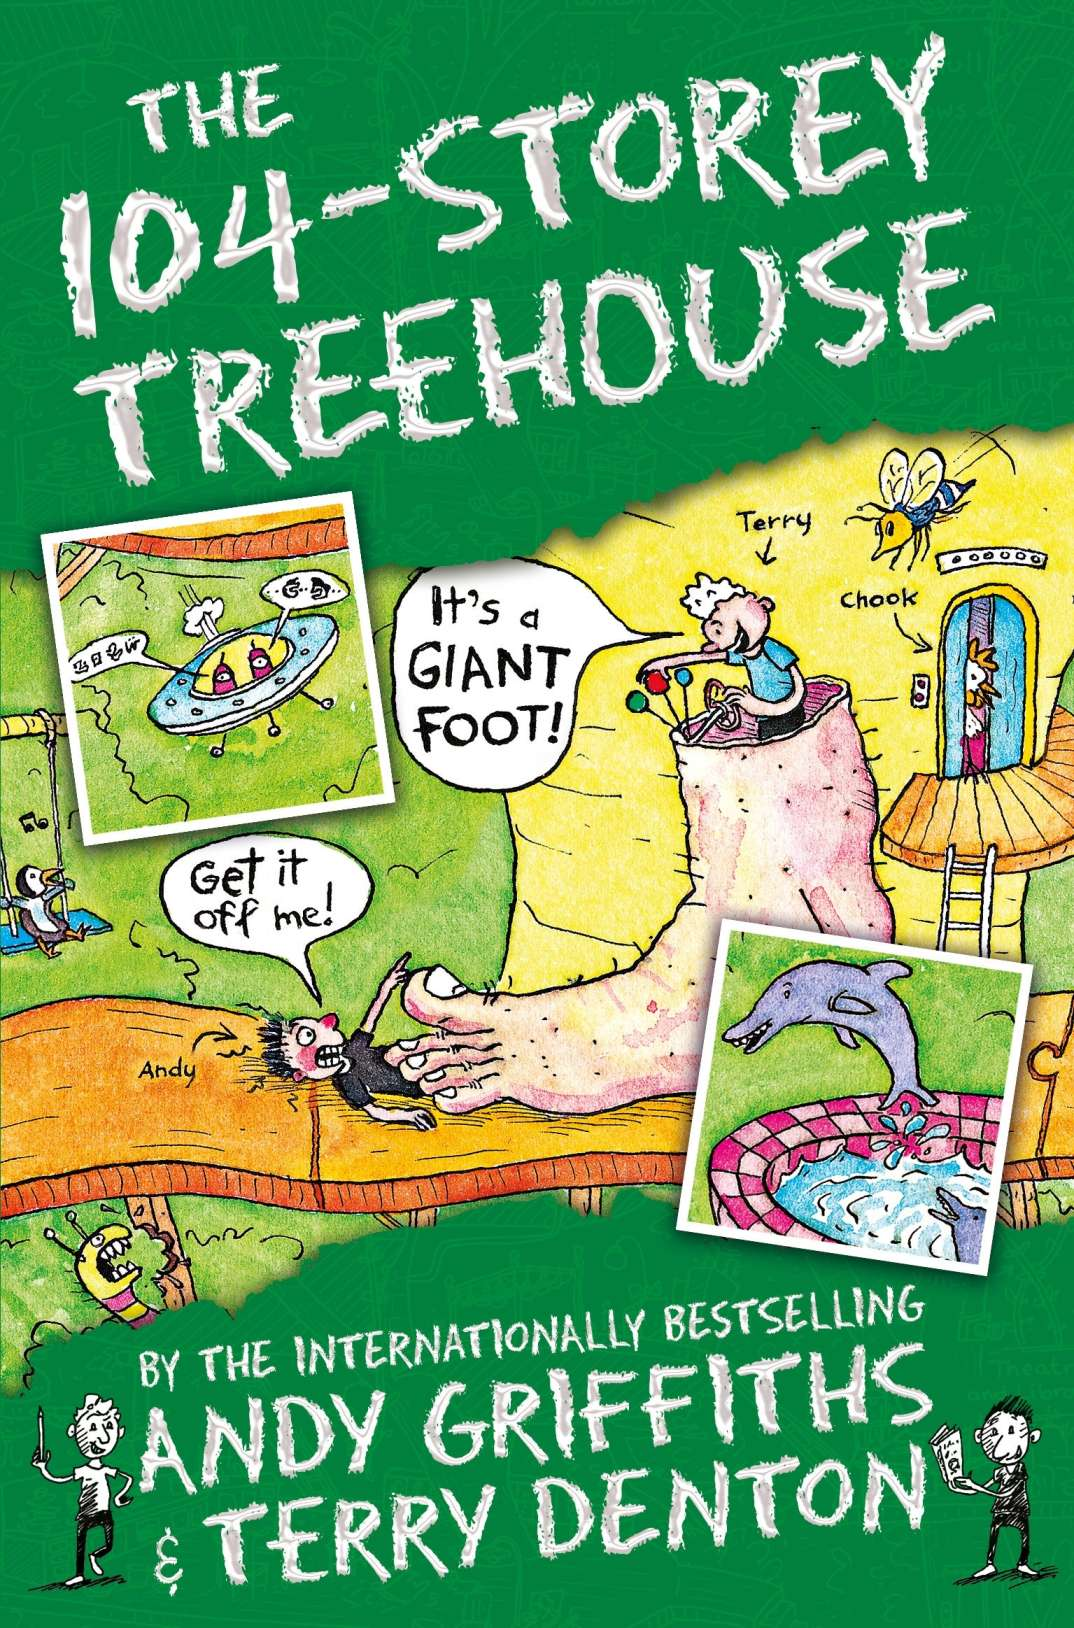 104-Story Treehouse book cover image